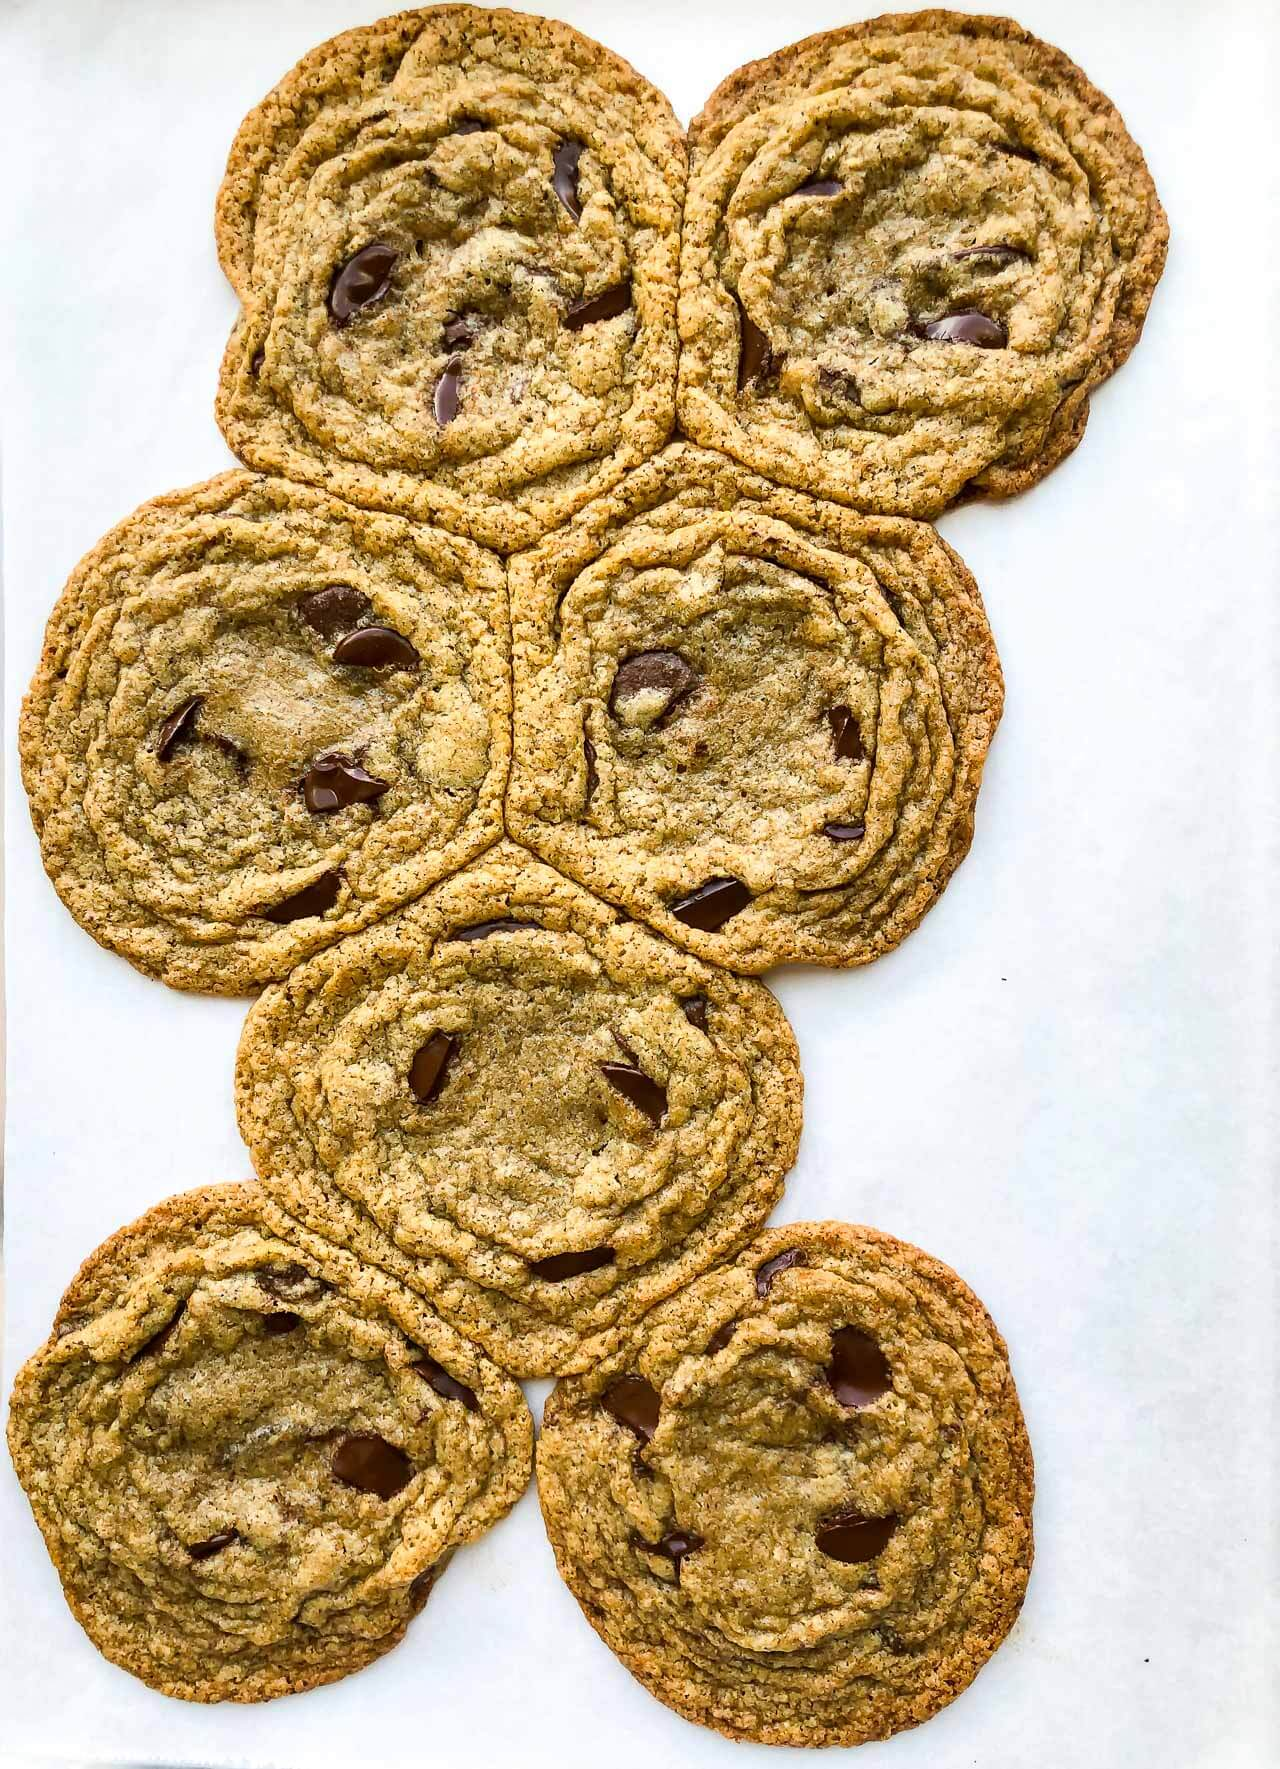 Image to show chocolate chip cookies made with 100 % buckwheat flour spread out as they bake and merge into one big cookie